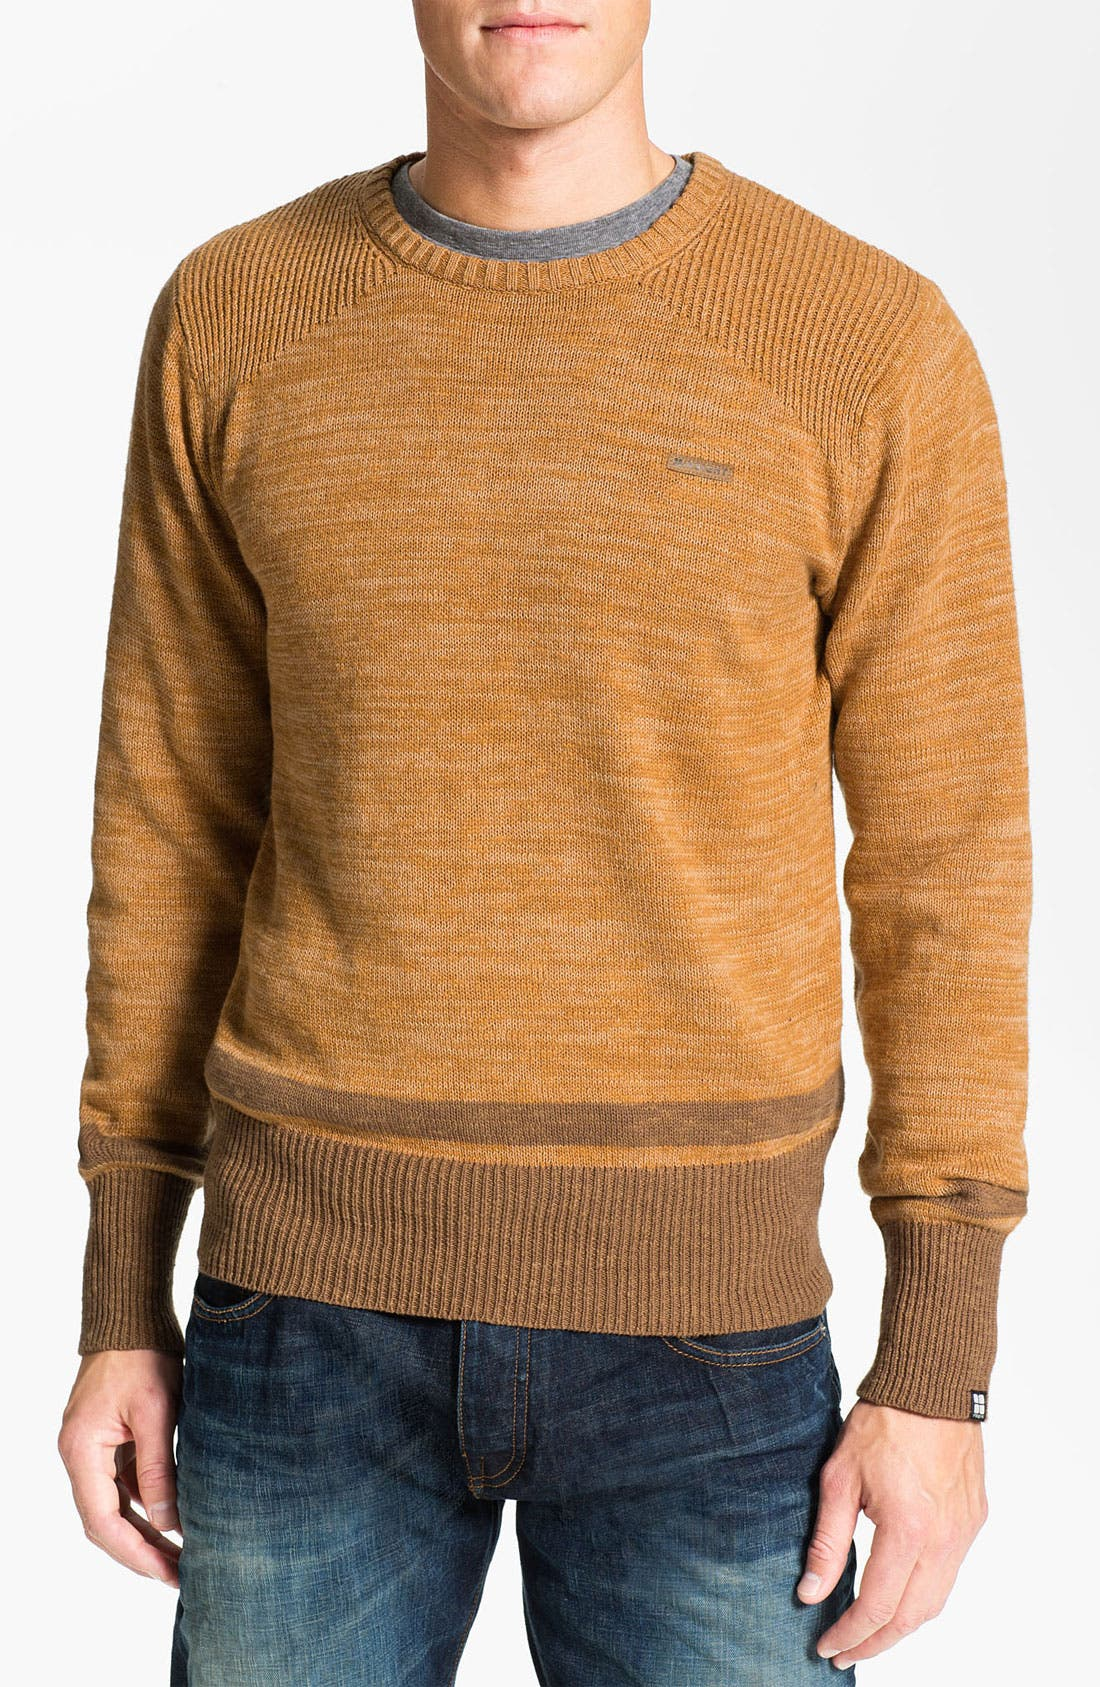 Main Image - Insight 'The Meek' Crewneck Sweater